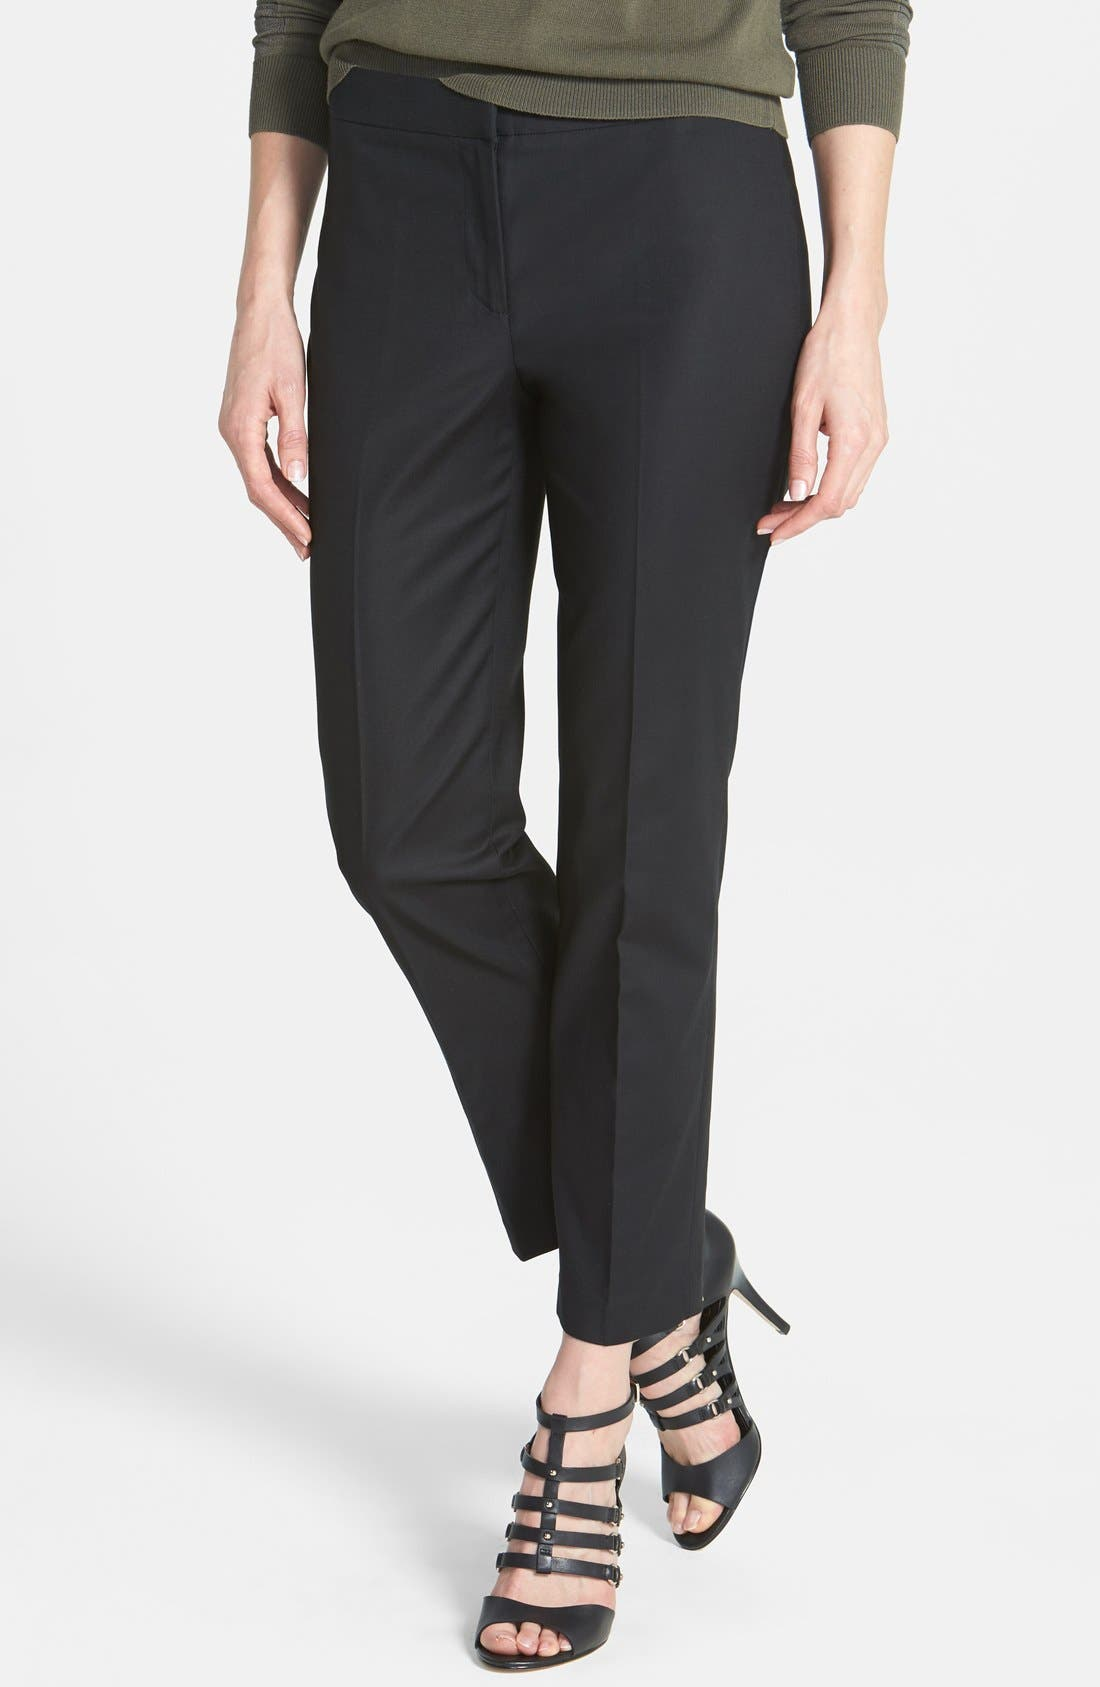 Alternate Image 1 Selected - NIC+ZOE The Perfect Ankle Pants (Regular & Petite)